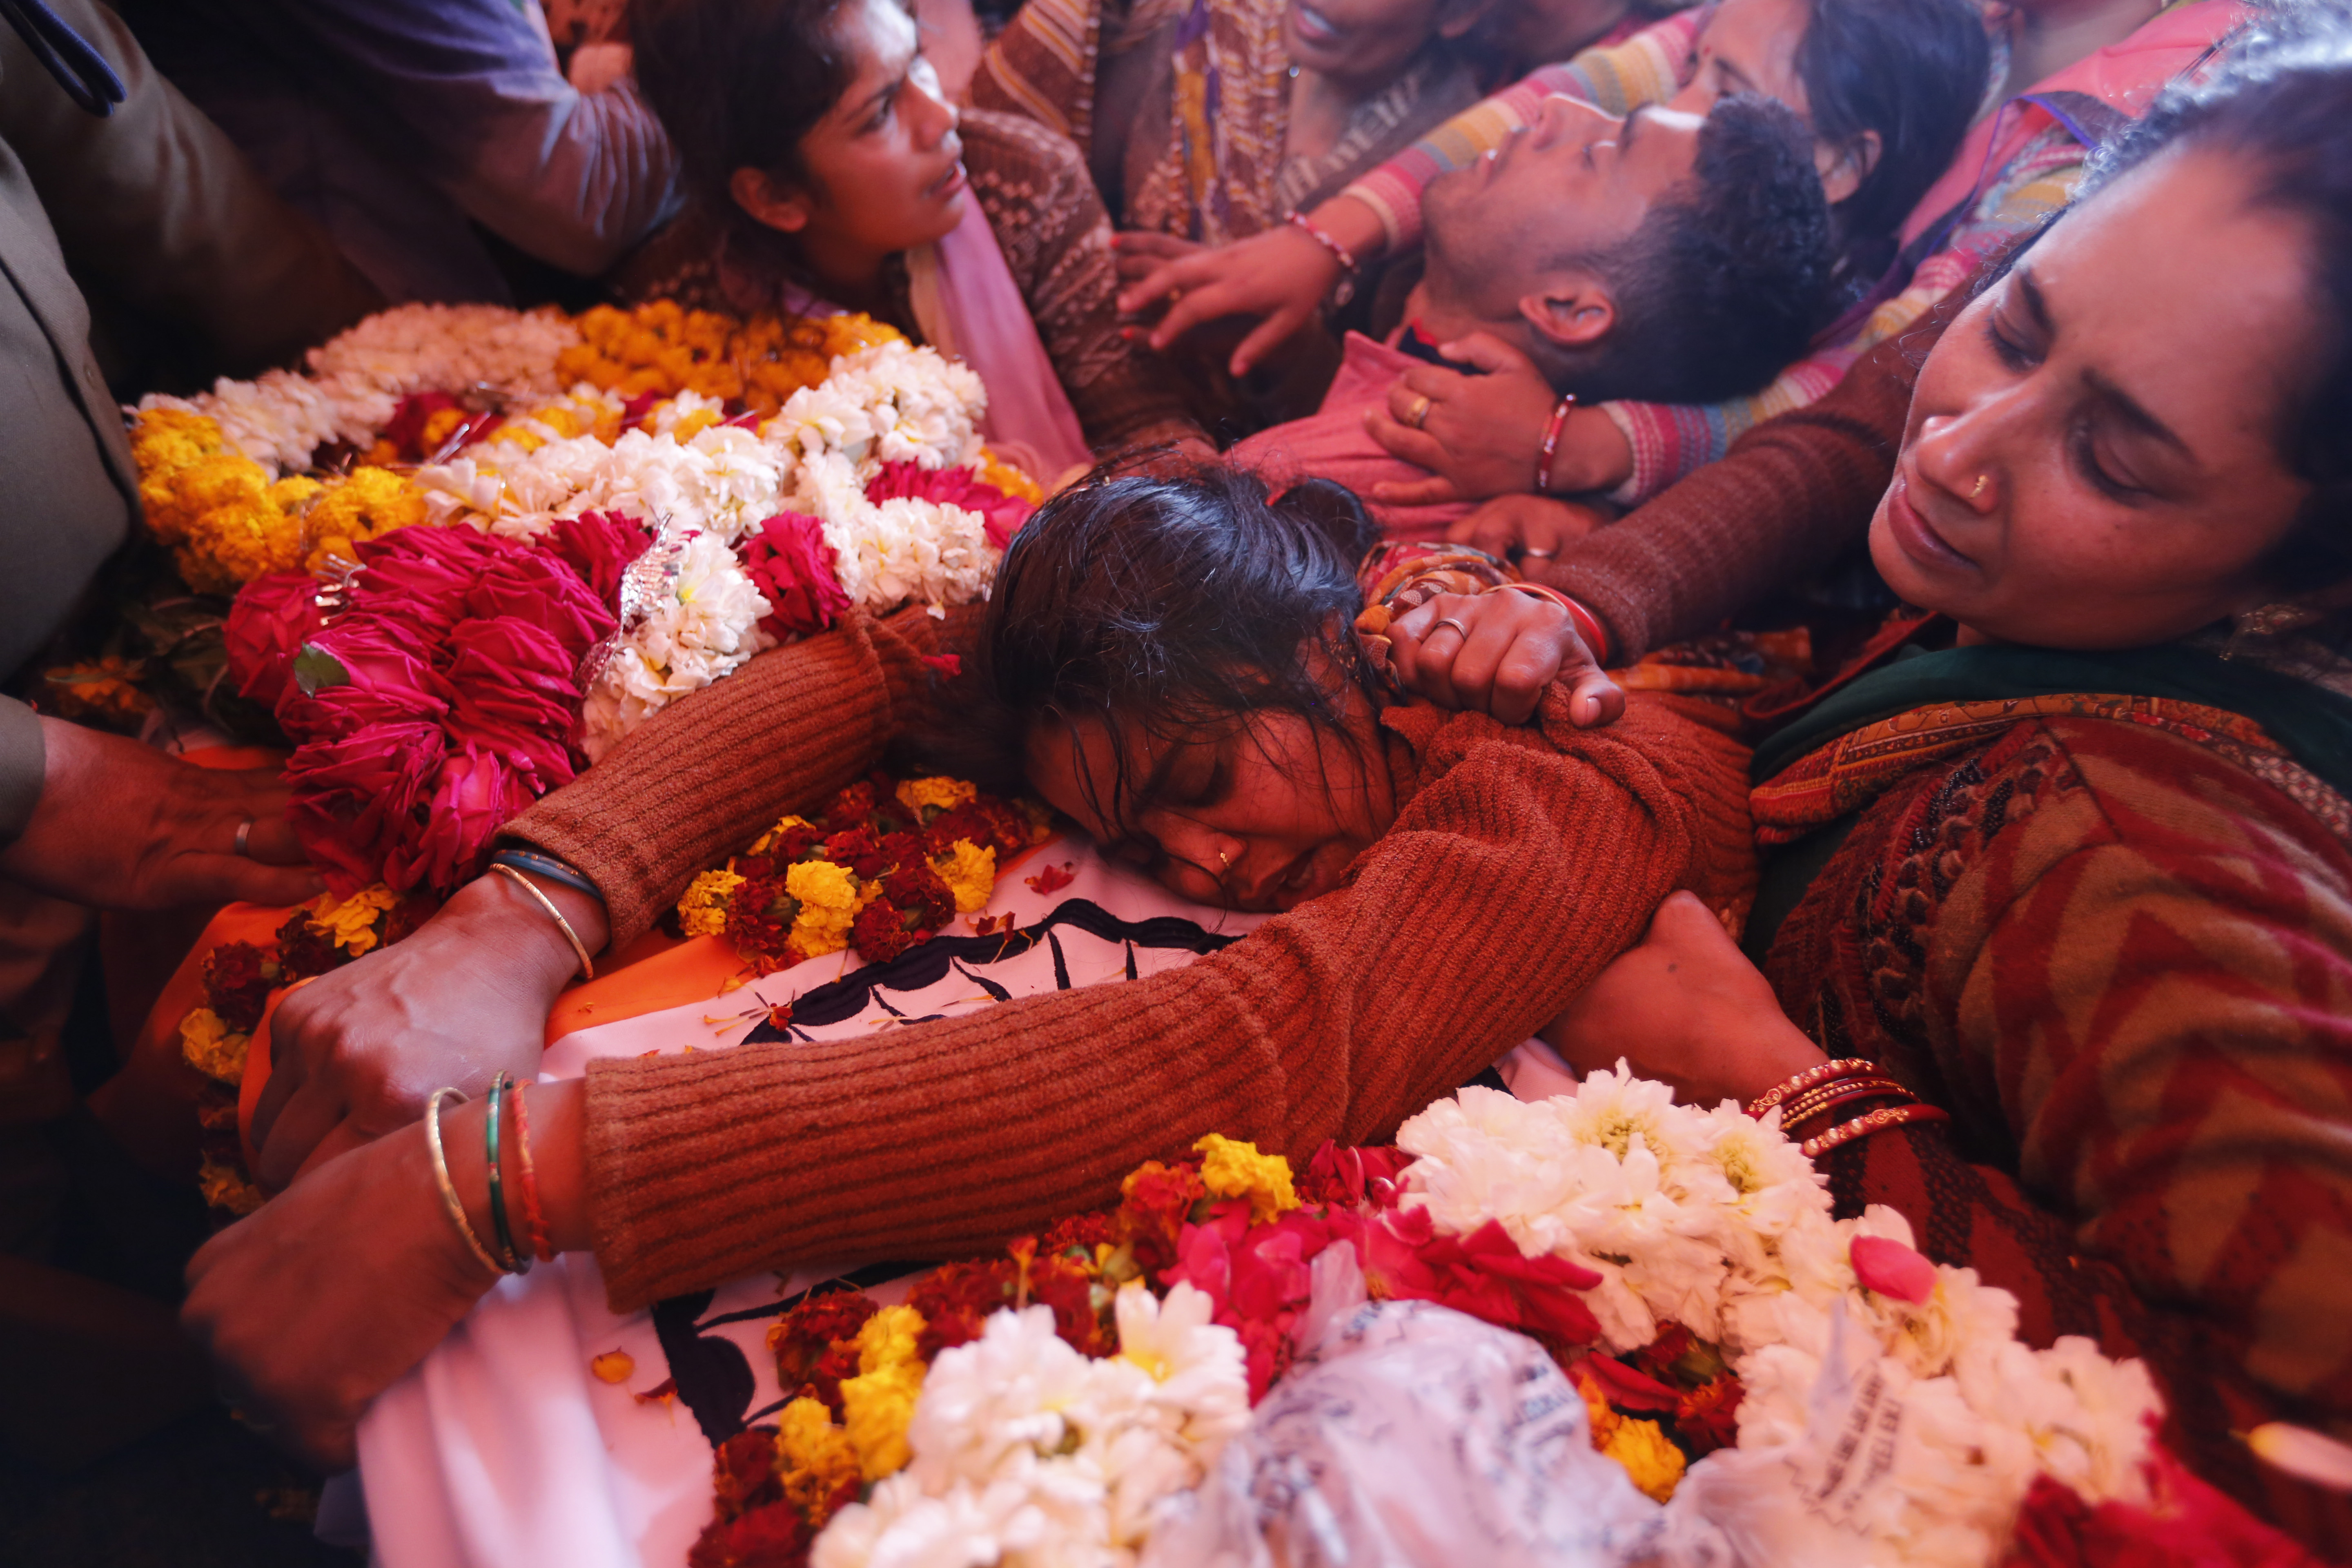 Sanjana cries over the body of her husband Mahesh Yadav, a Central Reserve Police Force (CRPF) soldier who was killed in Thursday bombing in Kashmir, in Tudihar village, some 56 kilometers east of Prayagraj, Uttar Pradesh state, India, Saturday, Feb. 16, 2019. As India considers its response to the suicide car bombing of a paramilitary convoy in Kashmir that killed dozens of soldiers, a retired military commander who oversaw a much-lauded military strike against neighboring Pakistan in 2016 has urged caution. (AP Photo/ Rajesh Kumar Singh)